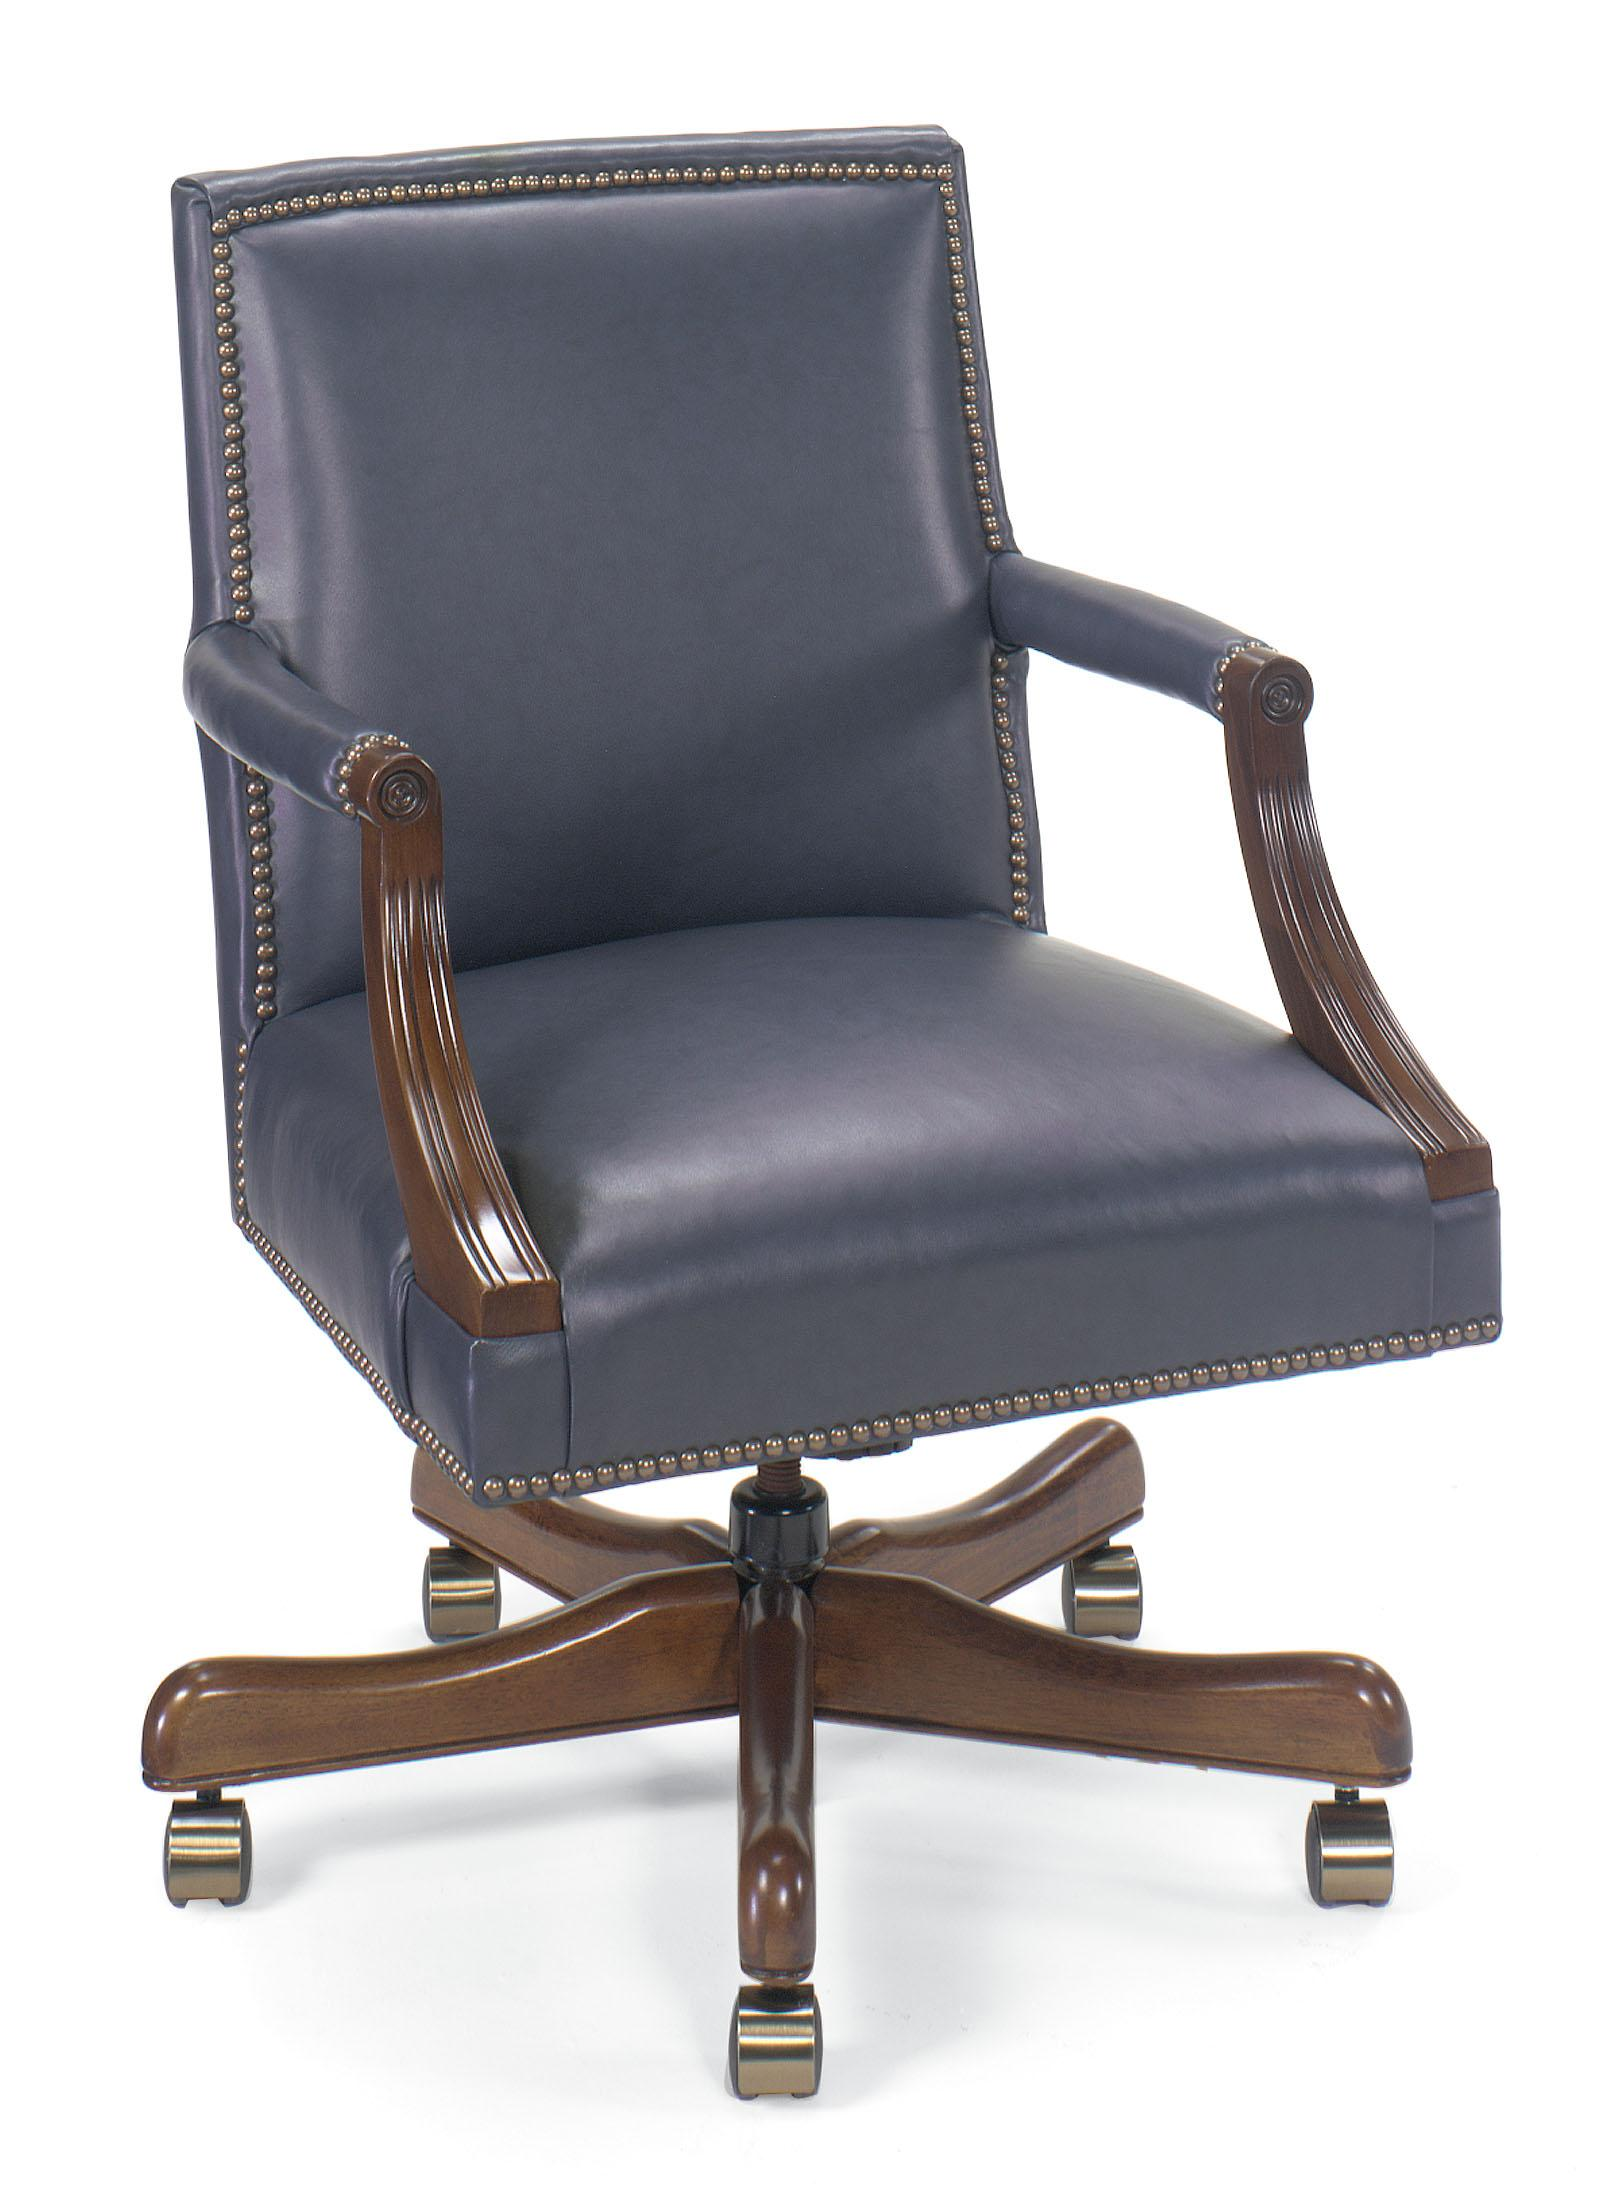 swivel chair jargon real good copper fairfield office furnishings leather executive